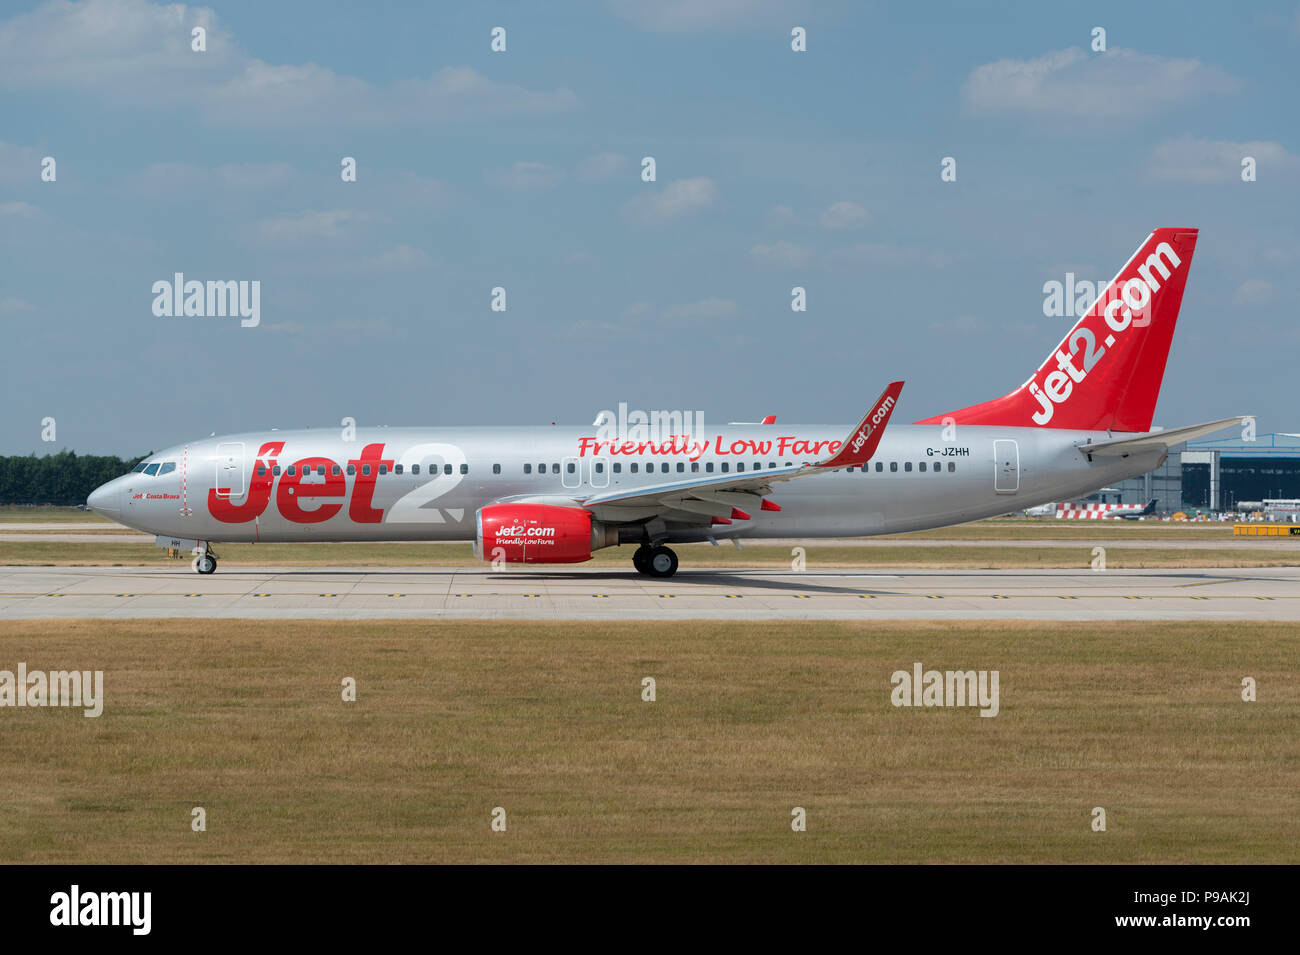 An Jet2 Boeing 737-85P sits on the runway at Manchester Airport as it prepares to take-off. - Stock Image